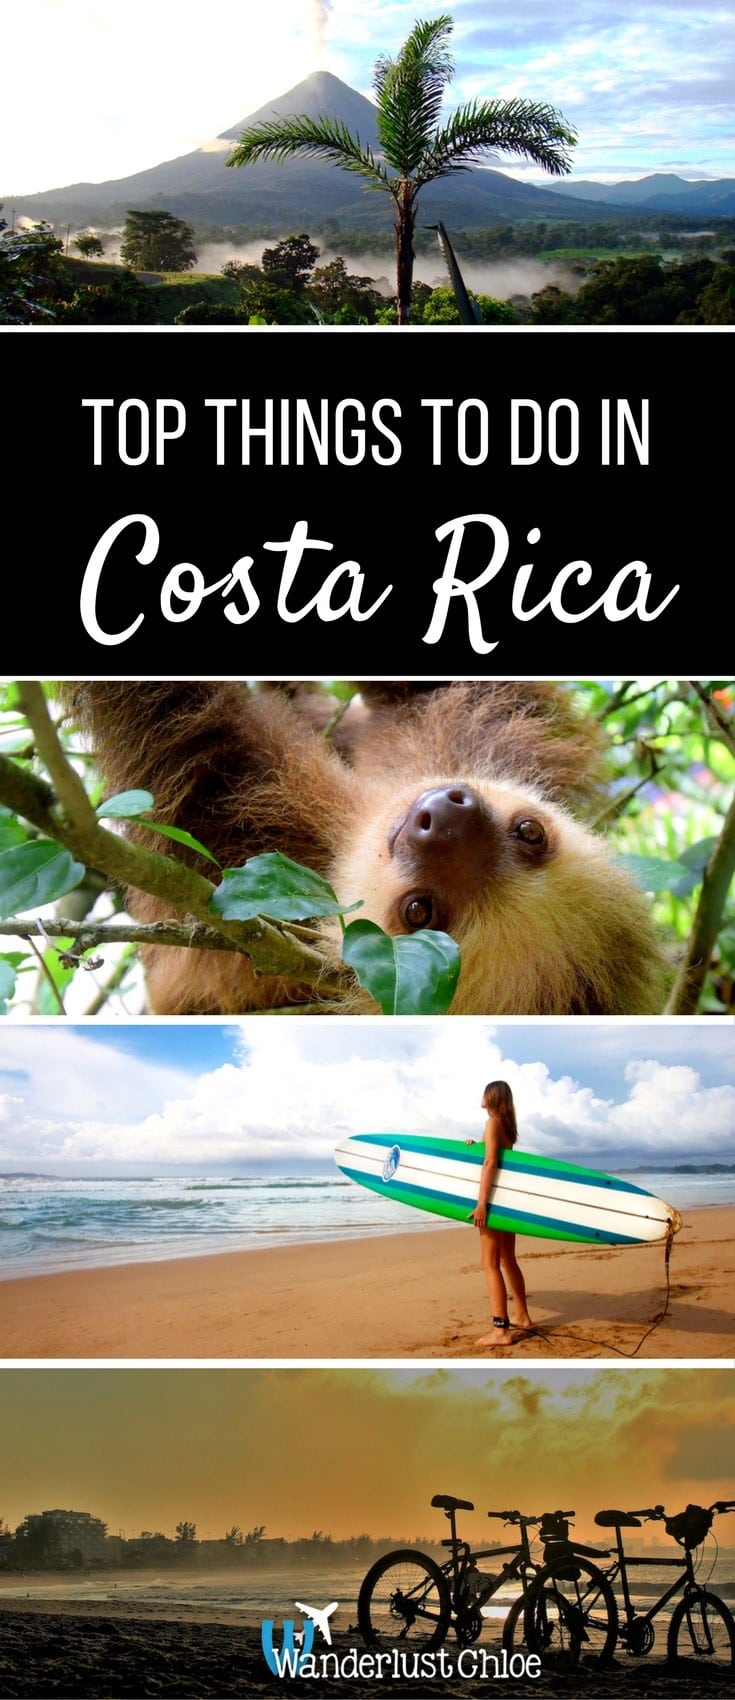 Costa Rica Top Things To Do